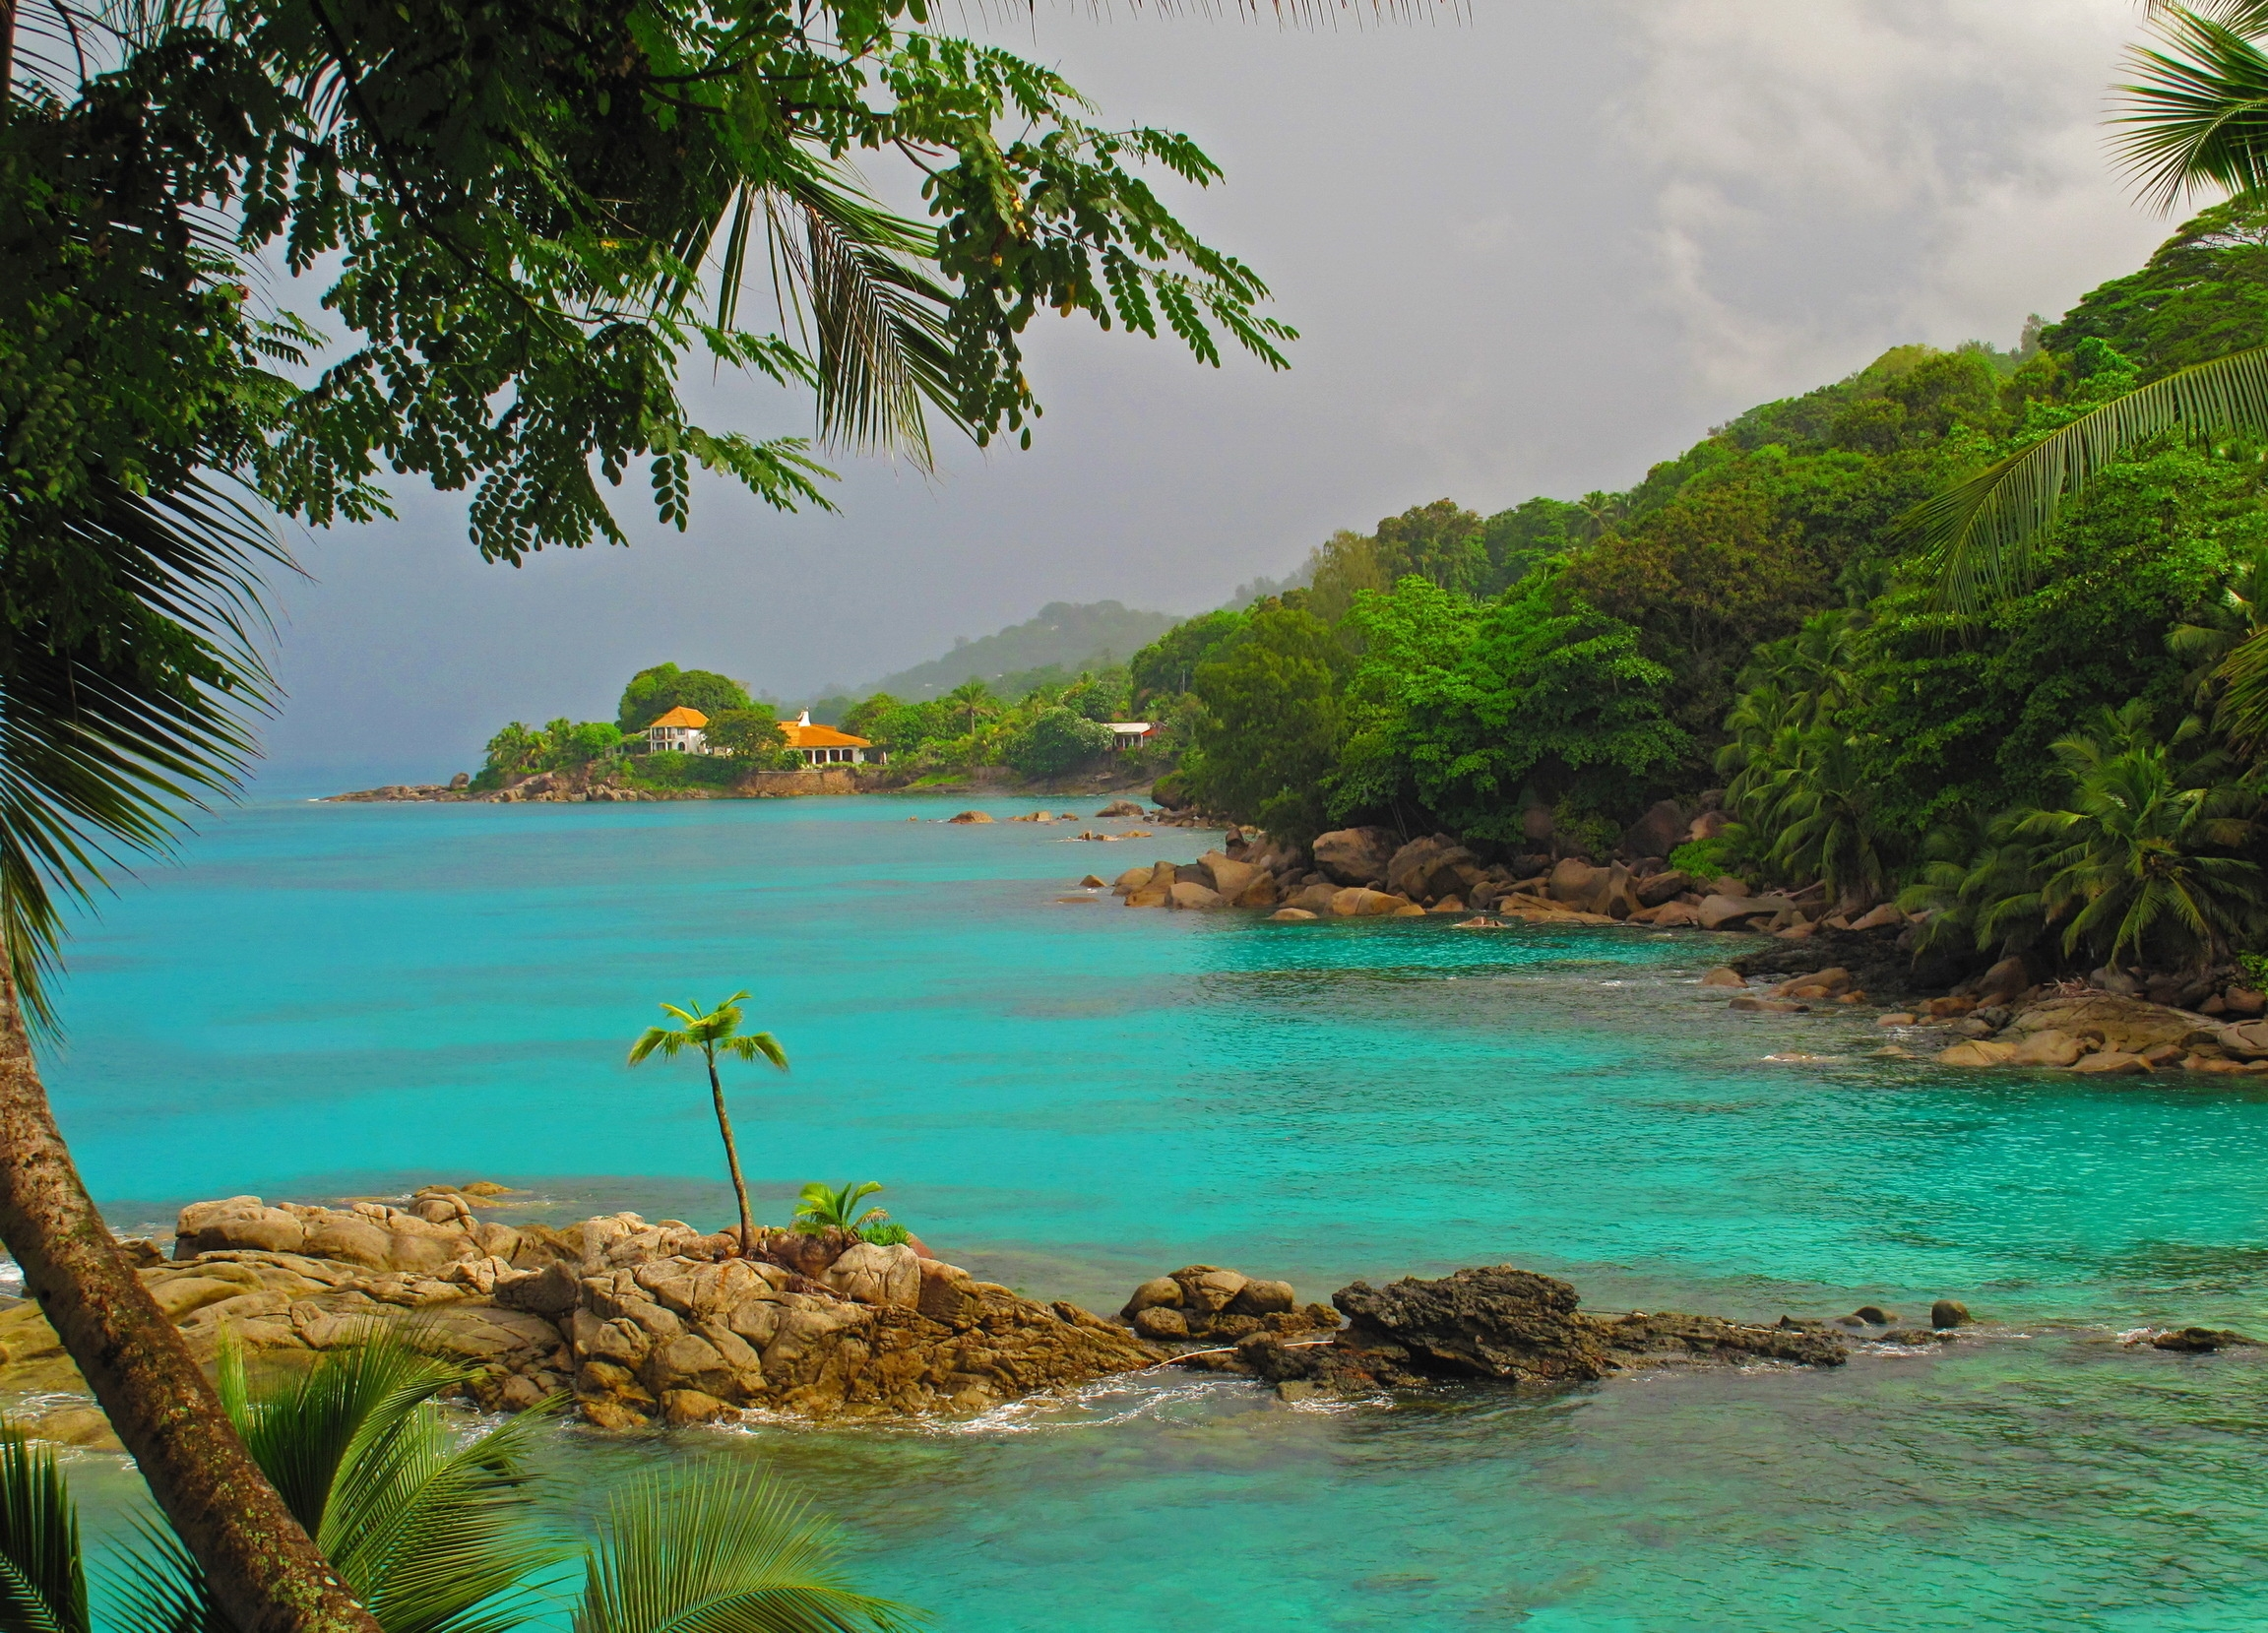 151335 download wallpaper Tropics, Island, Sea, Nature, Mountains screensavers and pictures for free